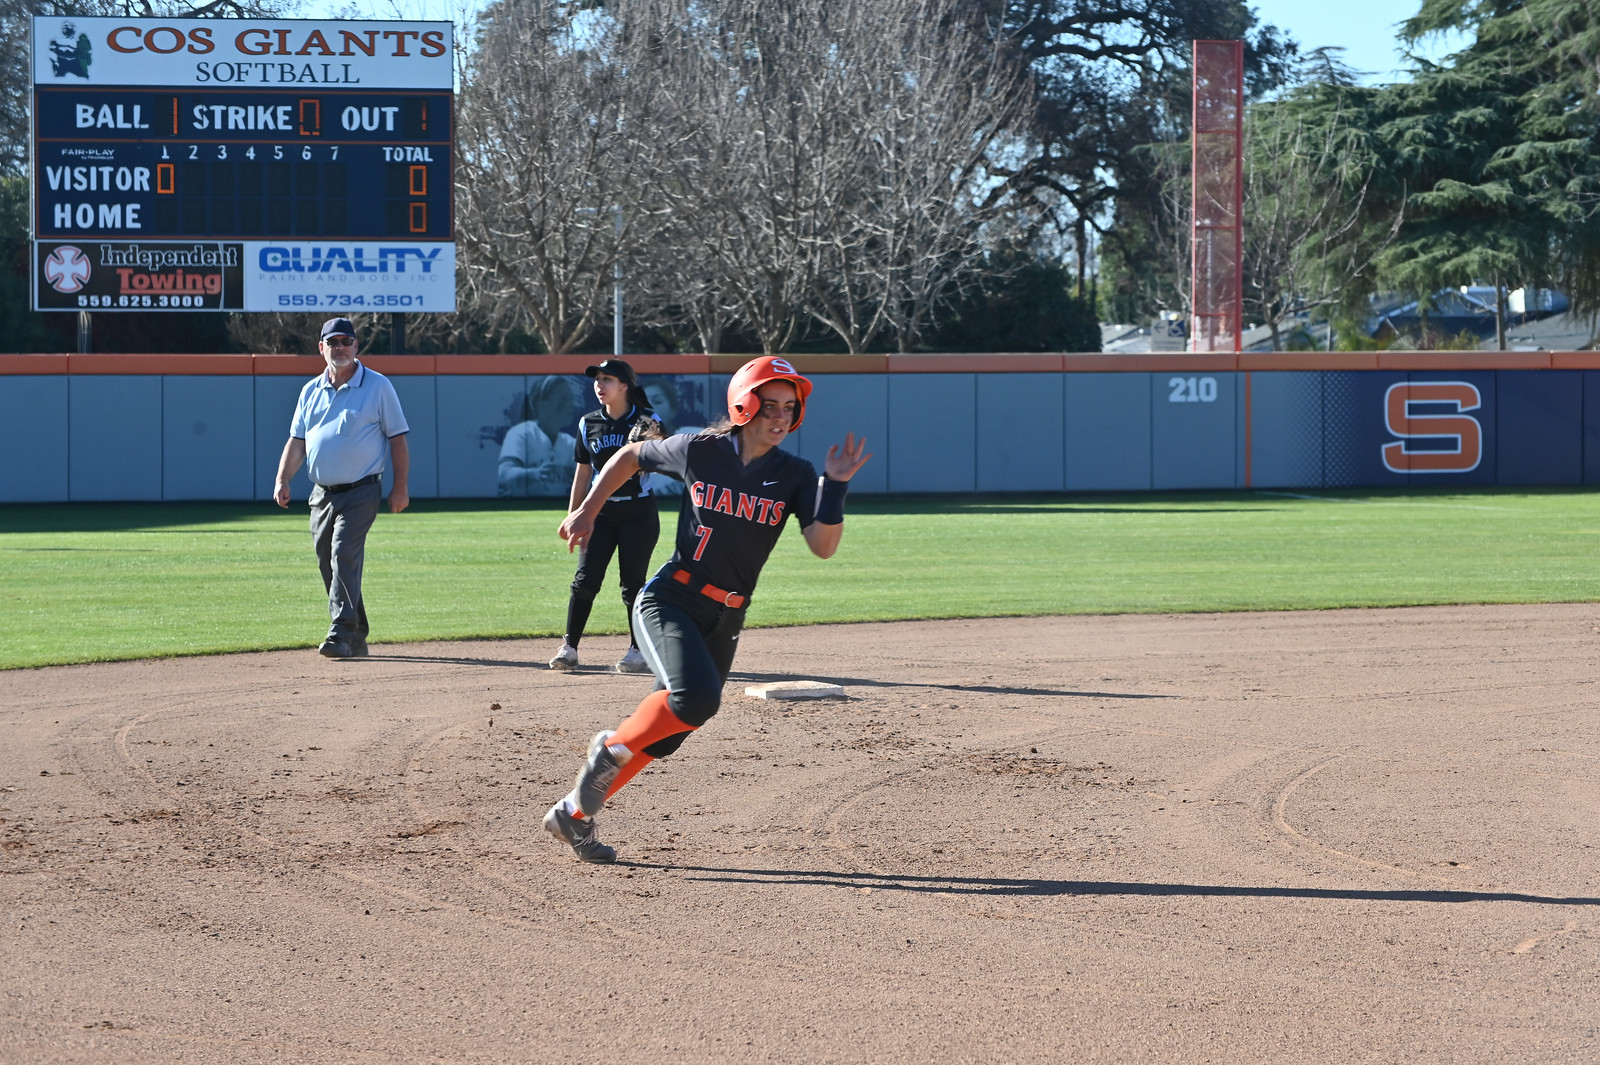 Sunblade rounds the bases in a game against Cabrillo earlier in the year. Photo by Norma Foster.